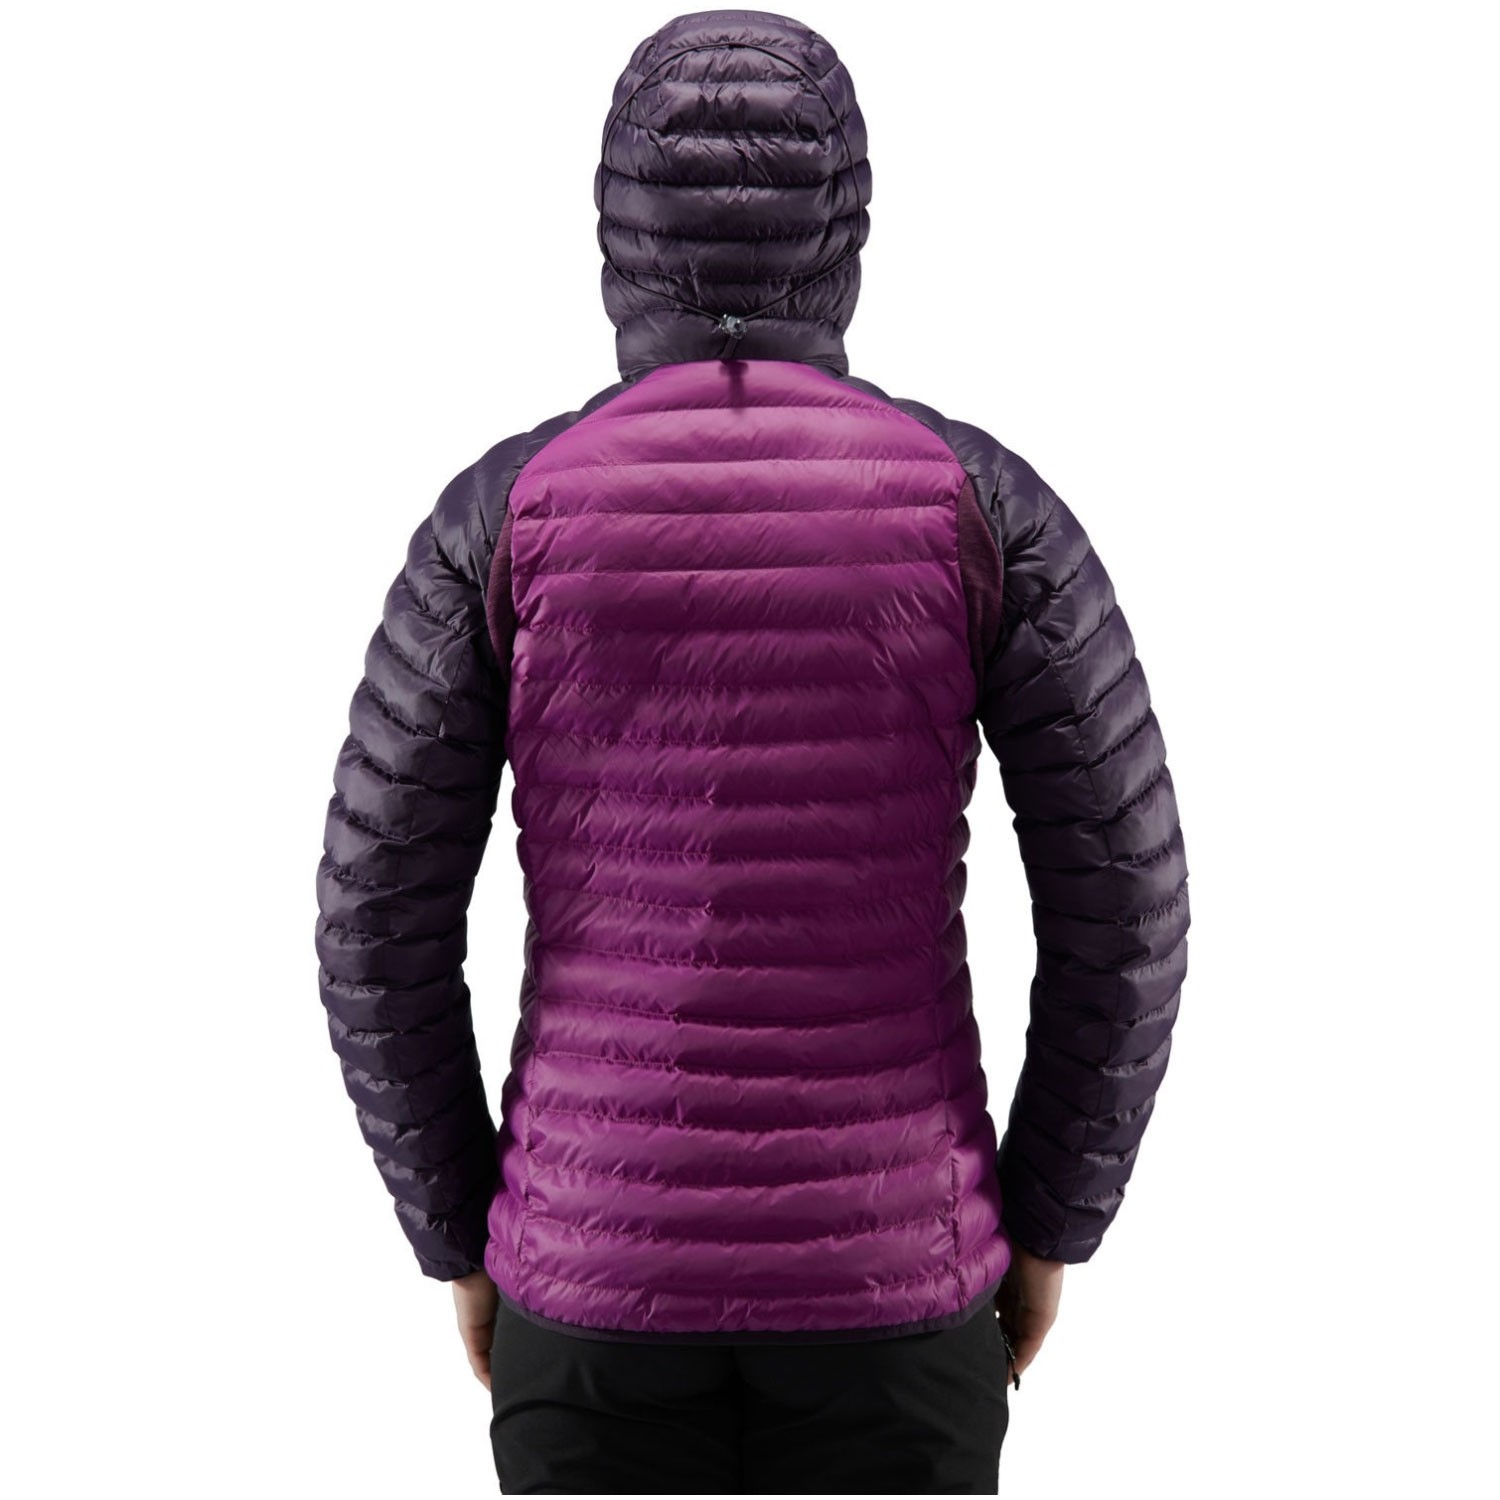 Haglofs Essens Mimic Hood Women's Jacket - Lilac/Acai Berry